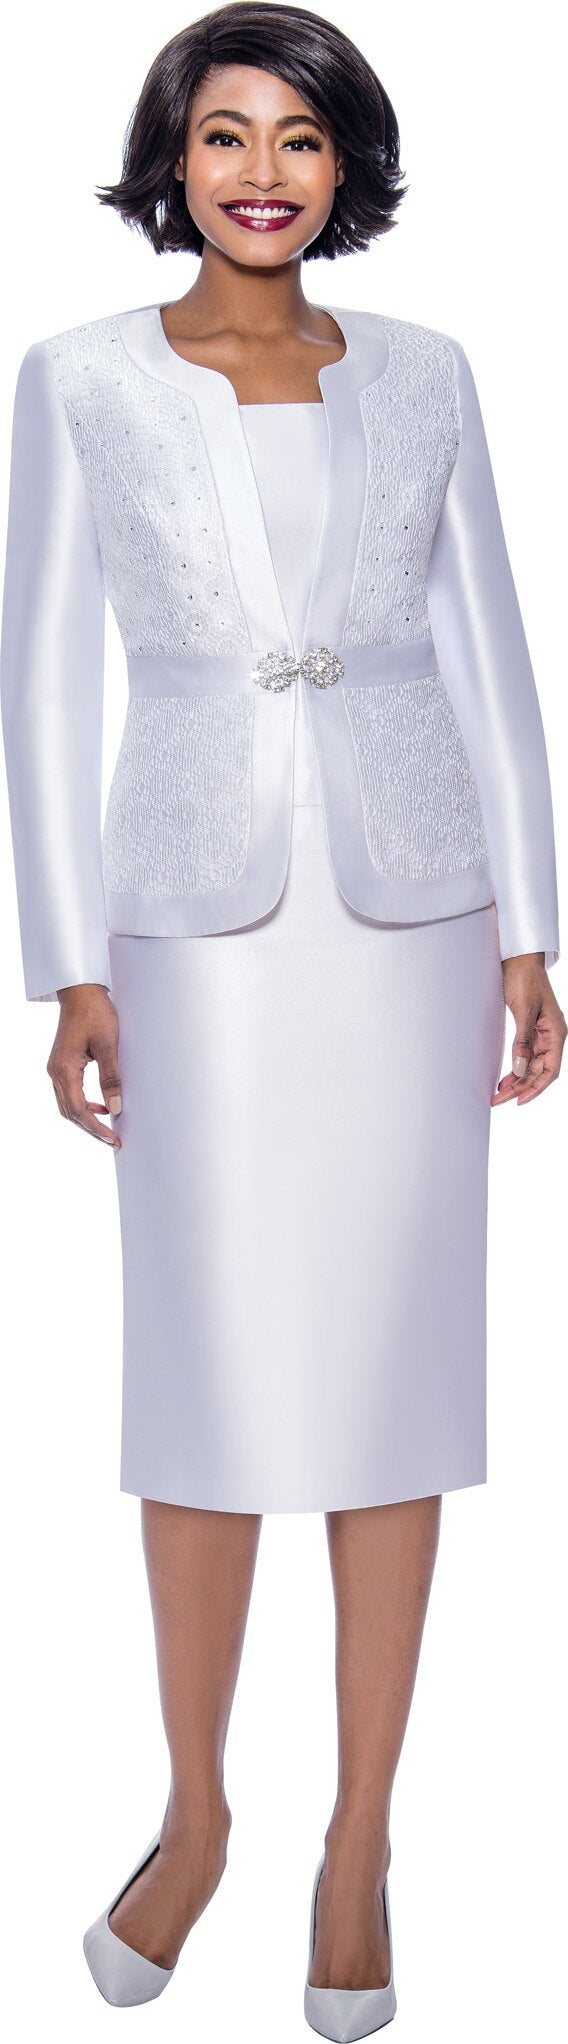 Terramina Suit 7726-White - Church Suits For Less